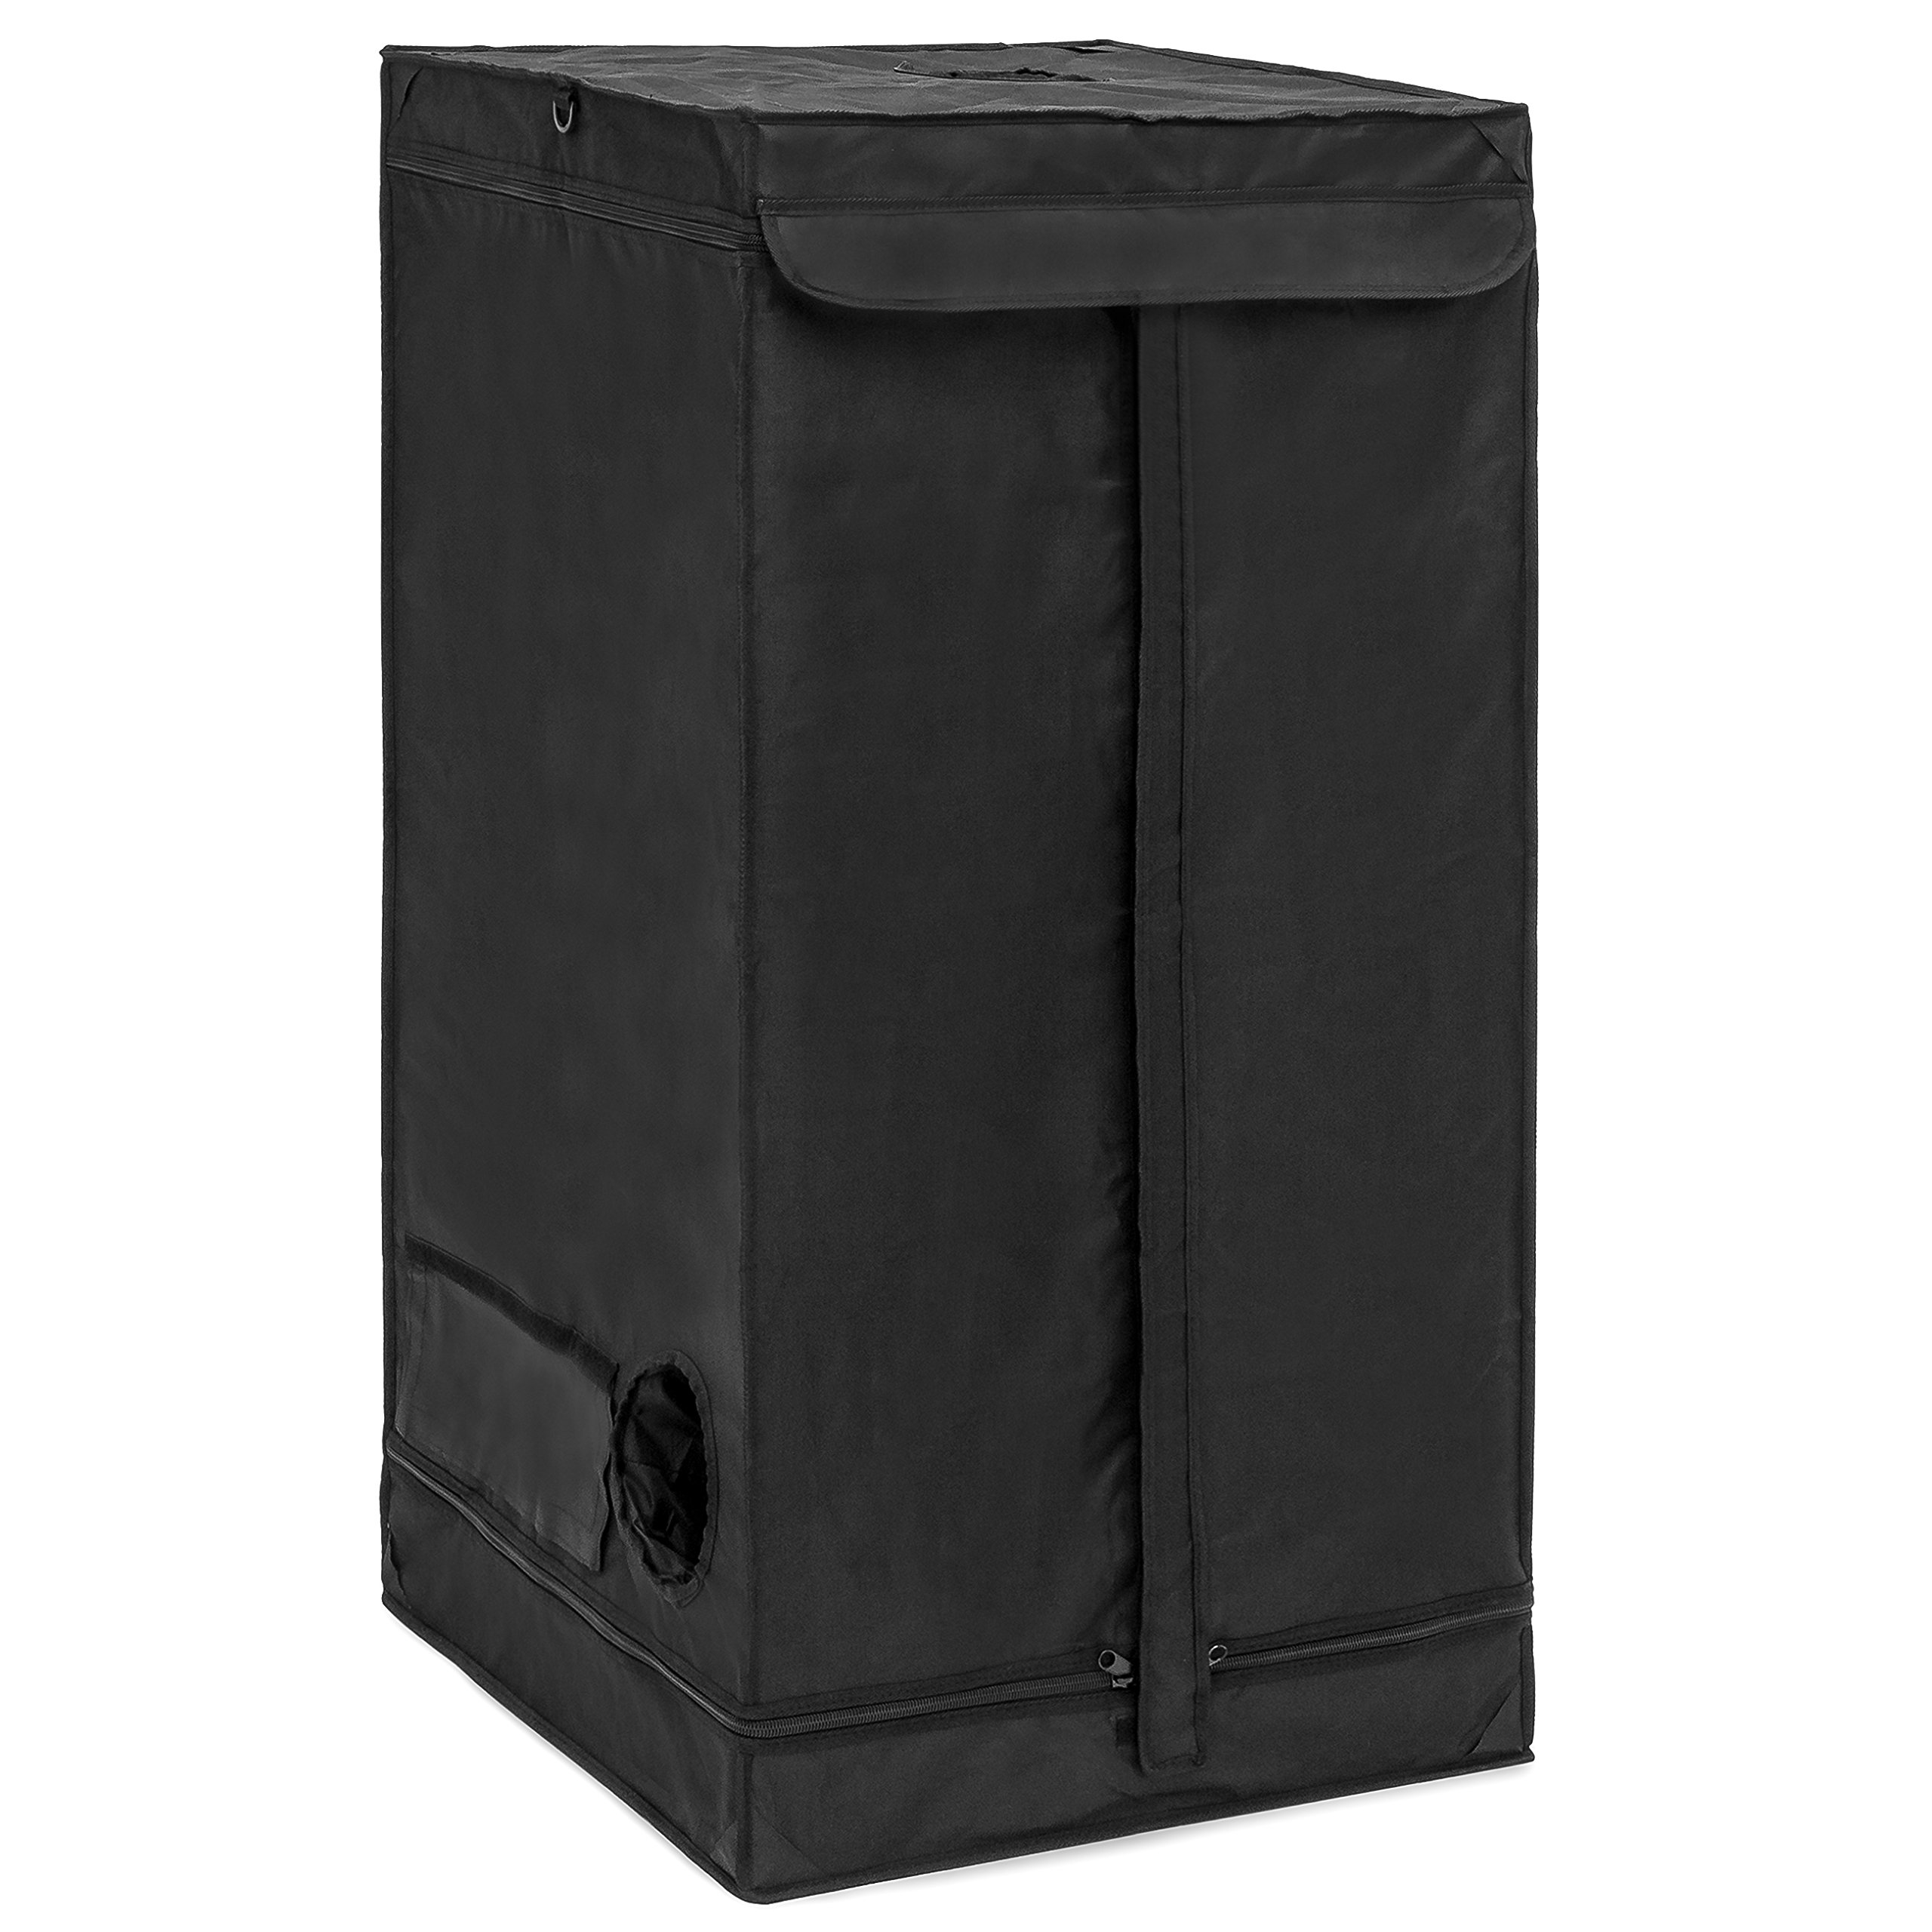 Best Choice Products Mini Greenhouse Heavy-Duty Insulated Hydroponics Grow Tent (Black)